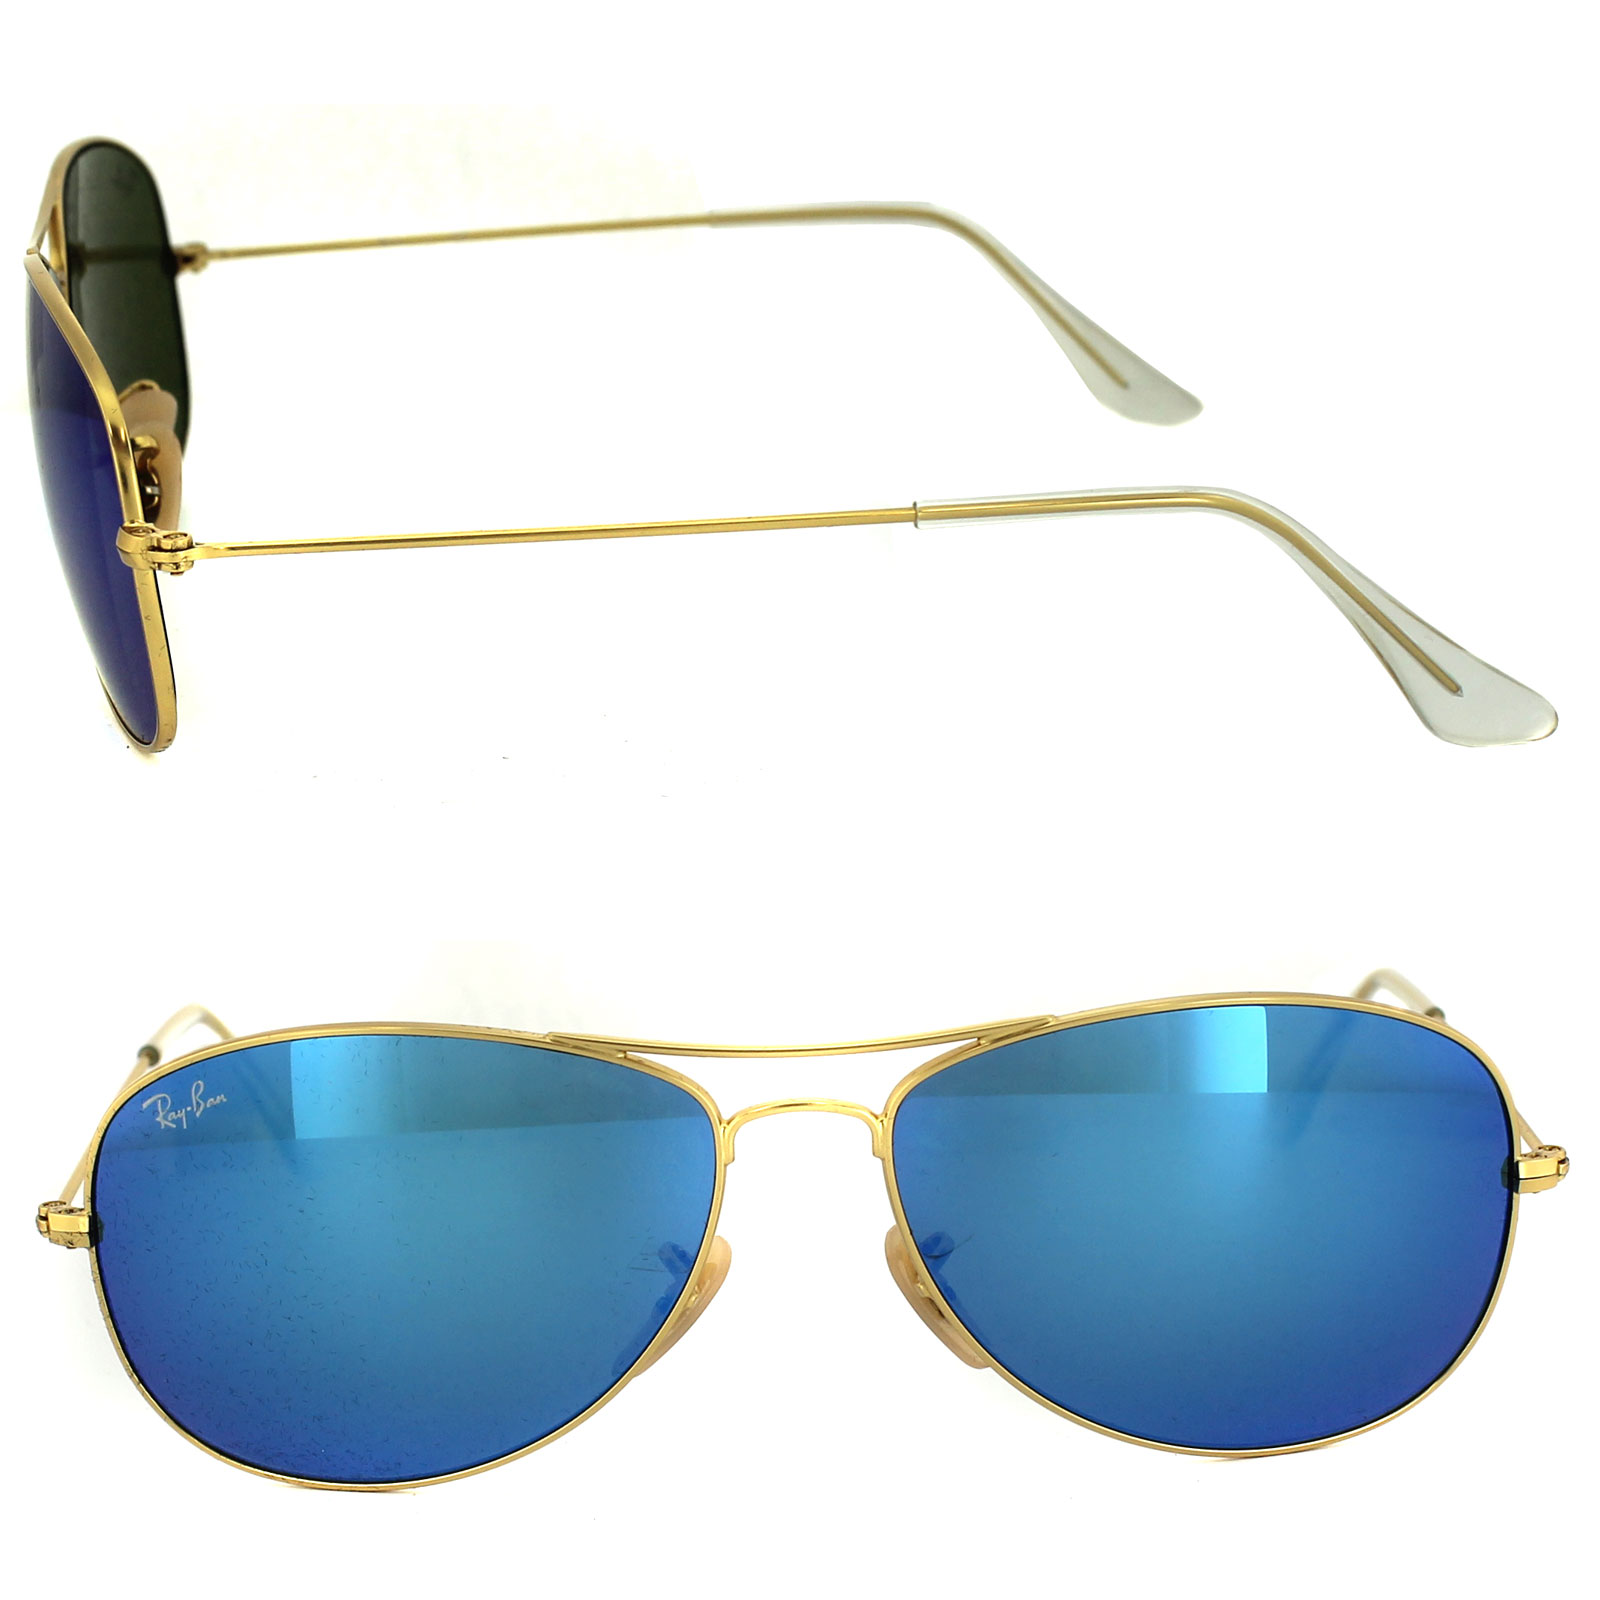 rayban 3362 lpyn  Sentinel Ray-Ban Sunglasses Cockpit 3362 112/17 Matt Gold Blue Mirror